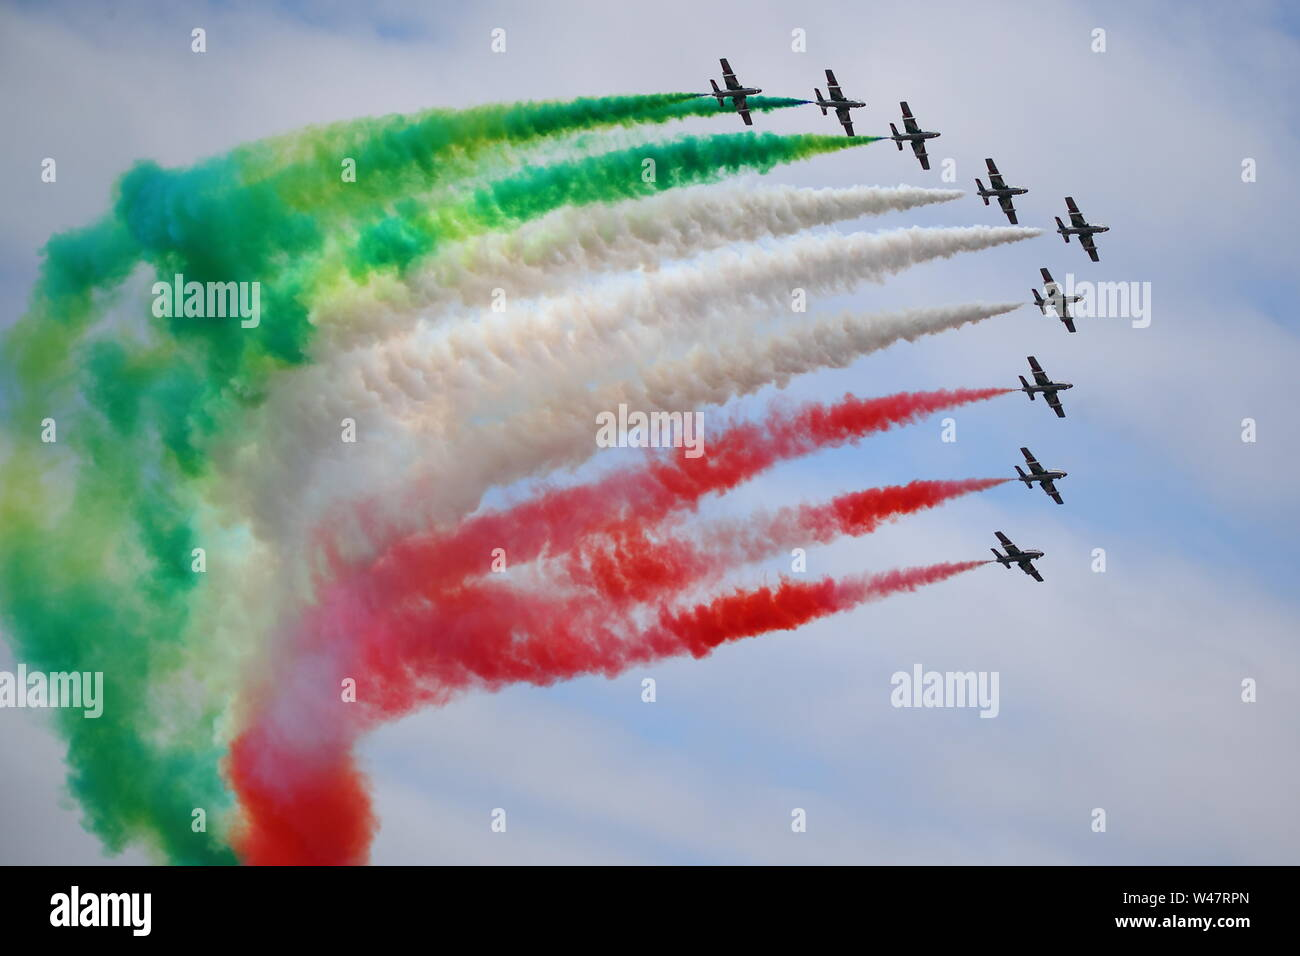 Fairford, UK. 20th July 2019. Frecce Tricolori displayed their colourful routine at RIAT Air Show at Fairford. © Uwe Deffner / Alamy Live News Stock Photo